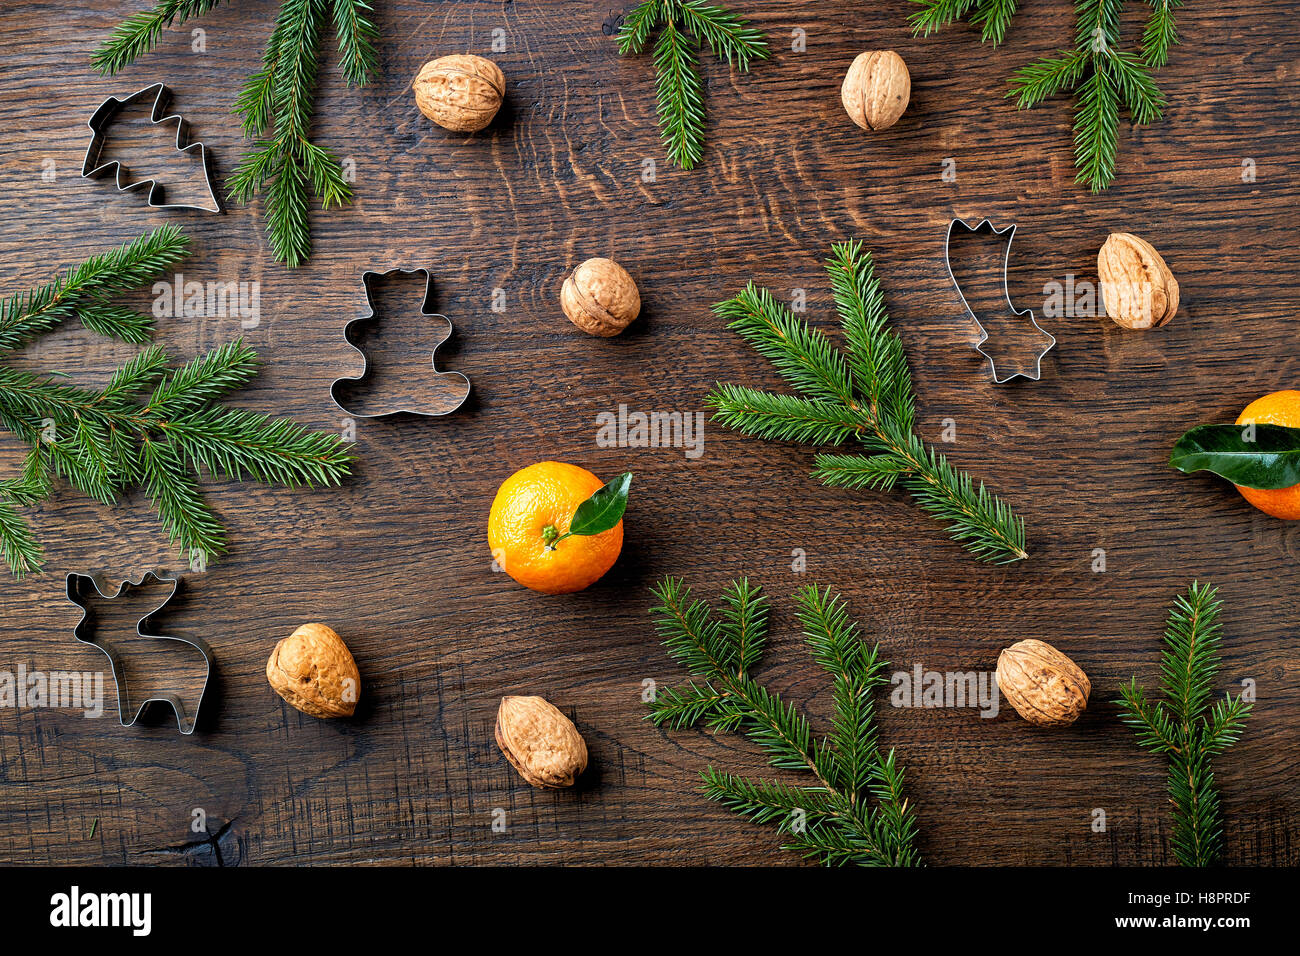 Christmas background with spruce branches, oranges, walnuts and cookie cutters - Stock Image